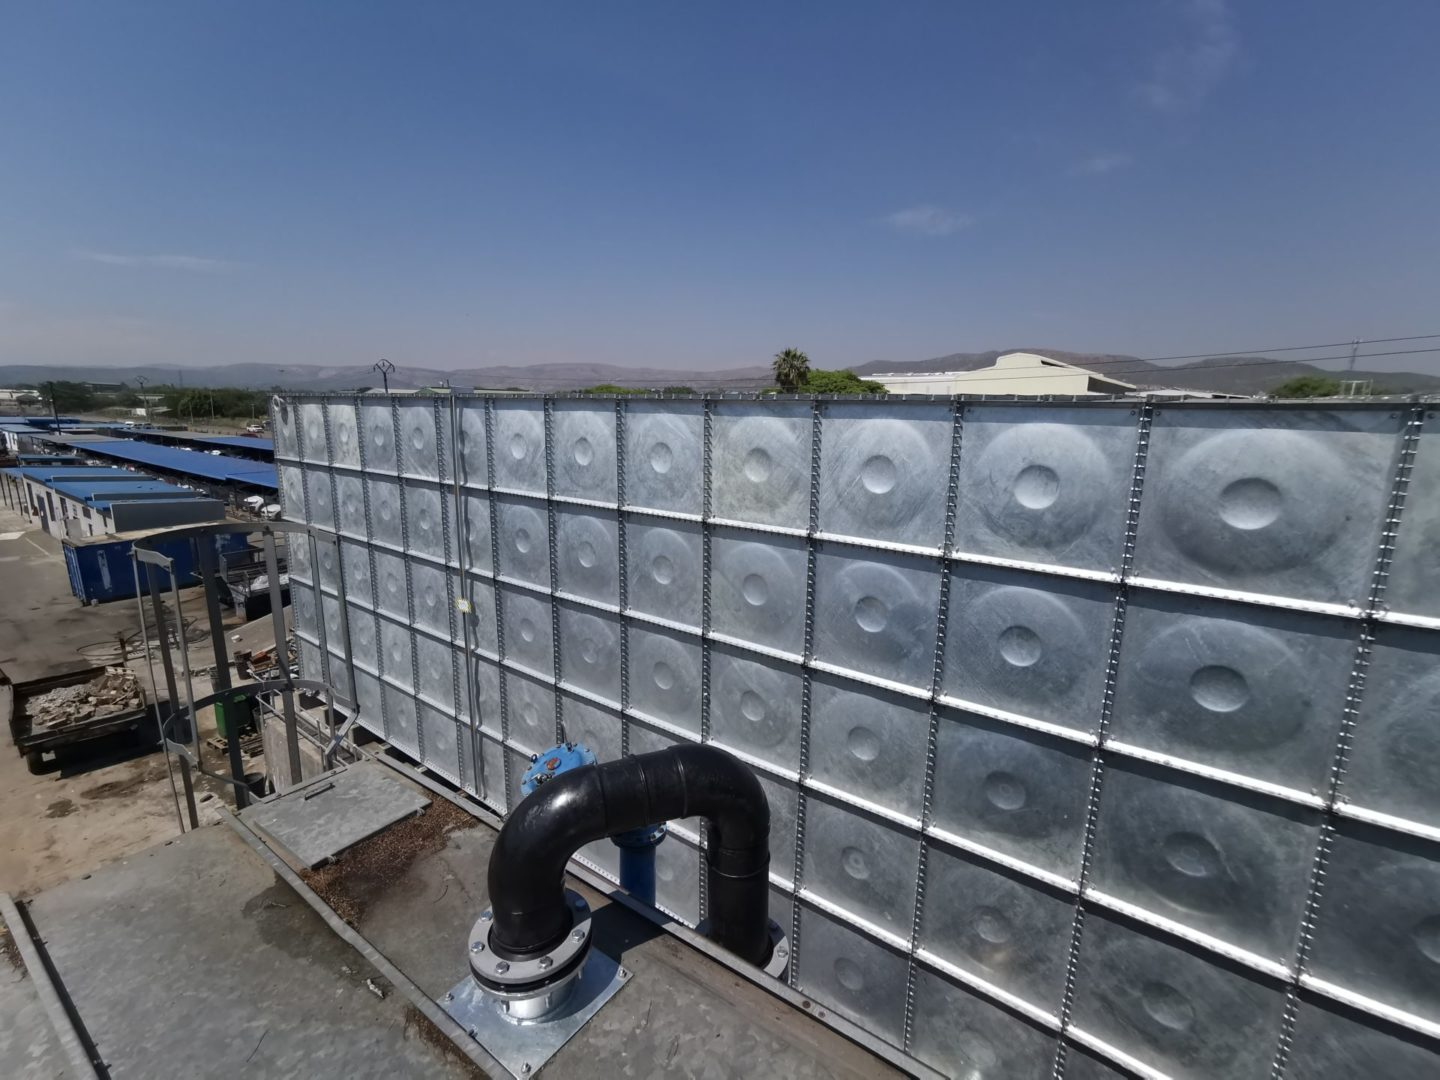 Water security for hospitals